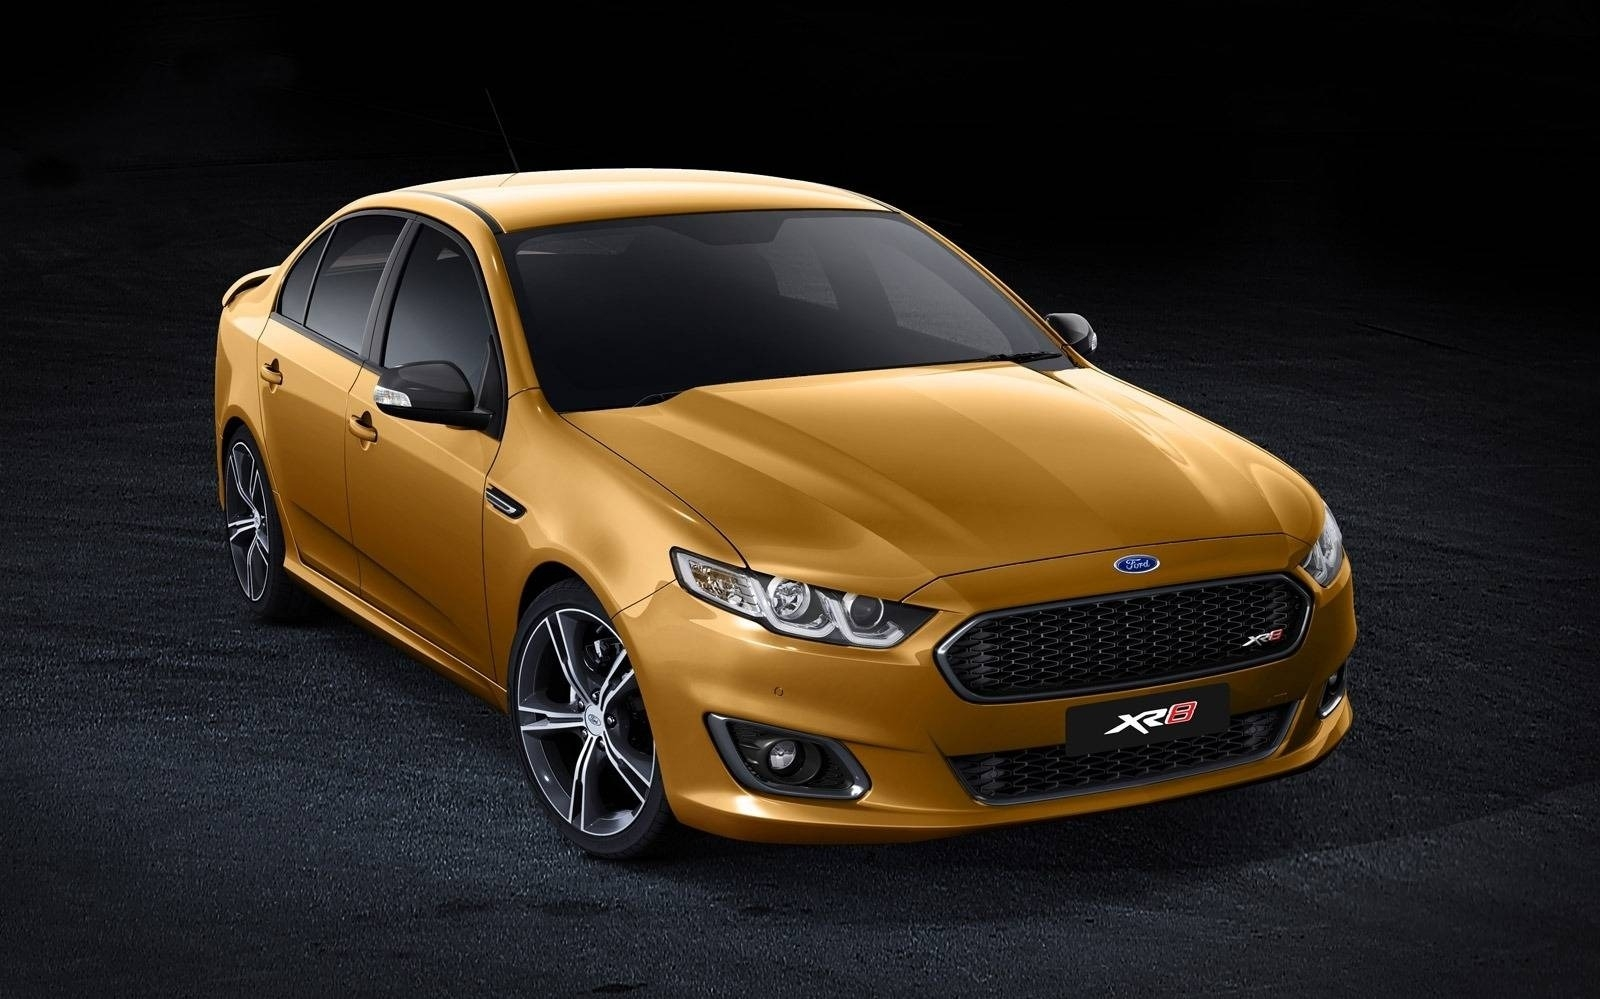 52 Best 2019 Ford Falcon Xr8 Gt Specs and Review